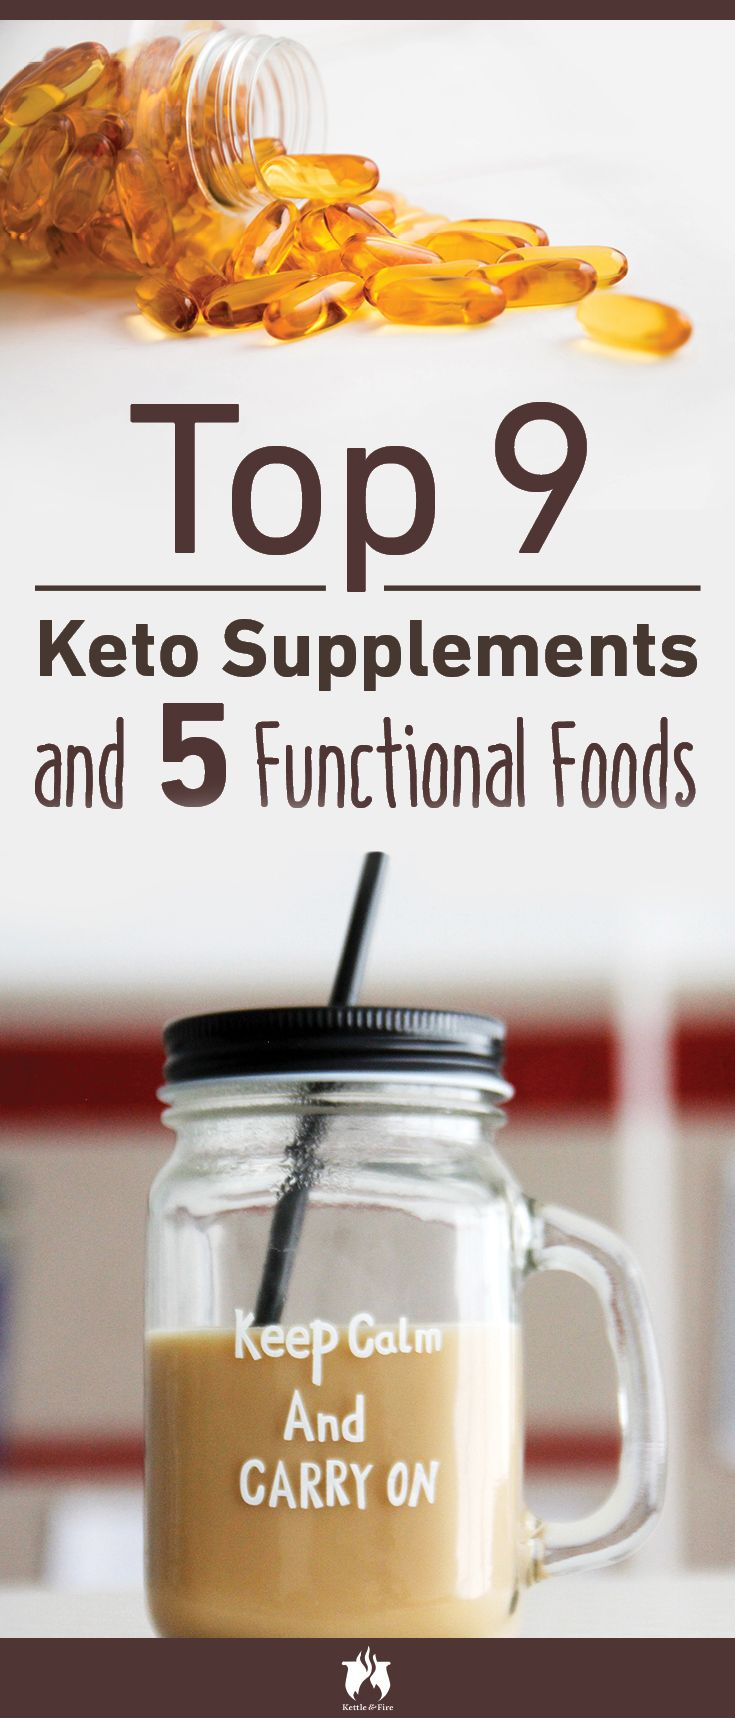 Top 9 keto supplements that can maximize your results by accelerating weight loss and boosting your energy levels on the keto diet, plus 5 functional foods.